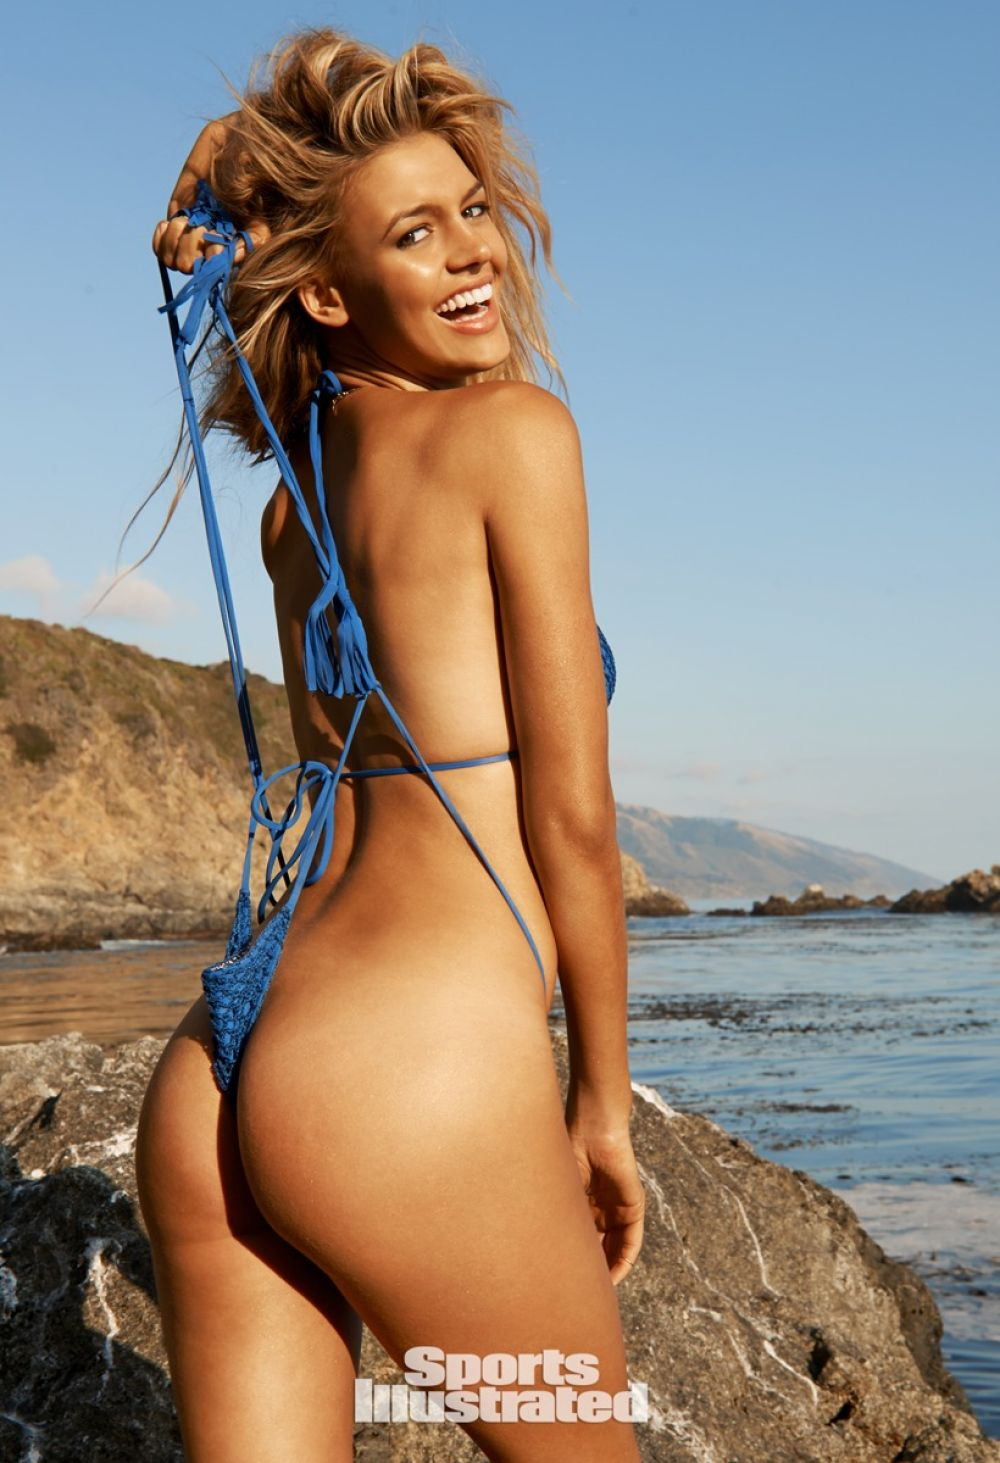 Nice little Sexy sports illustrated butt full